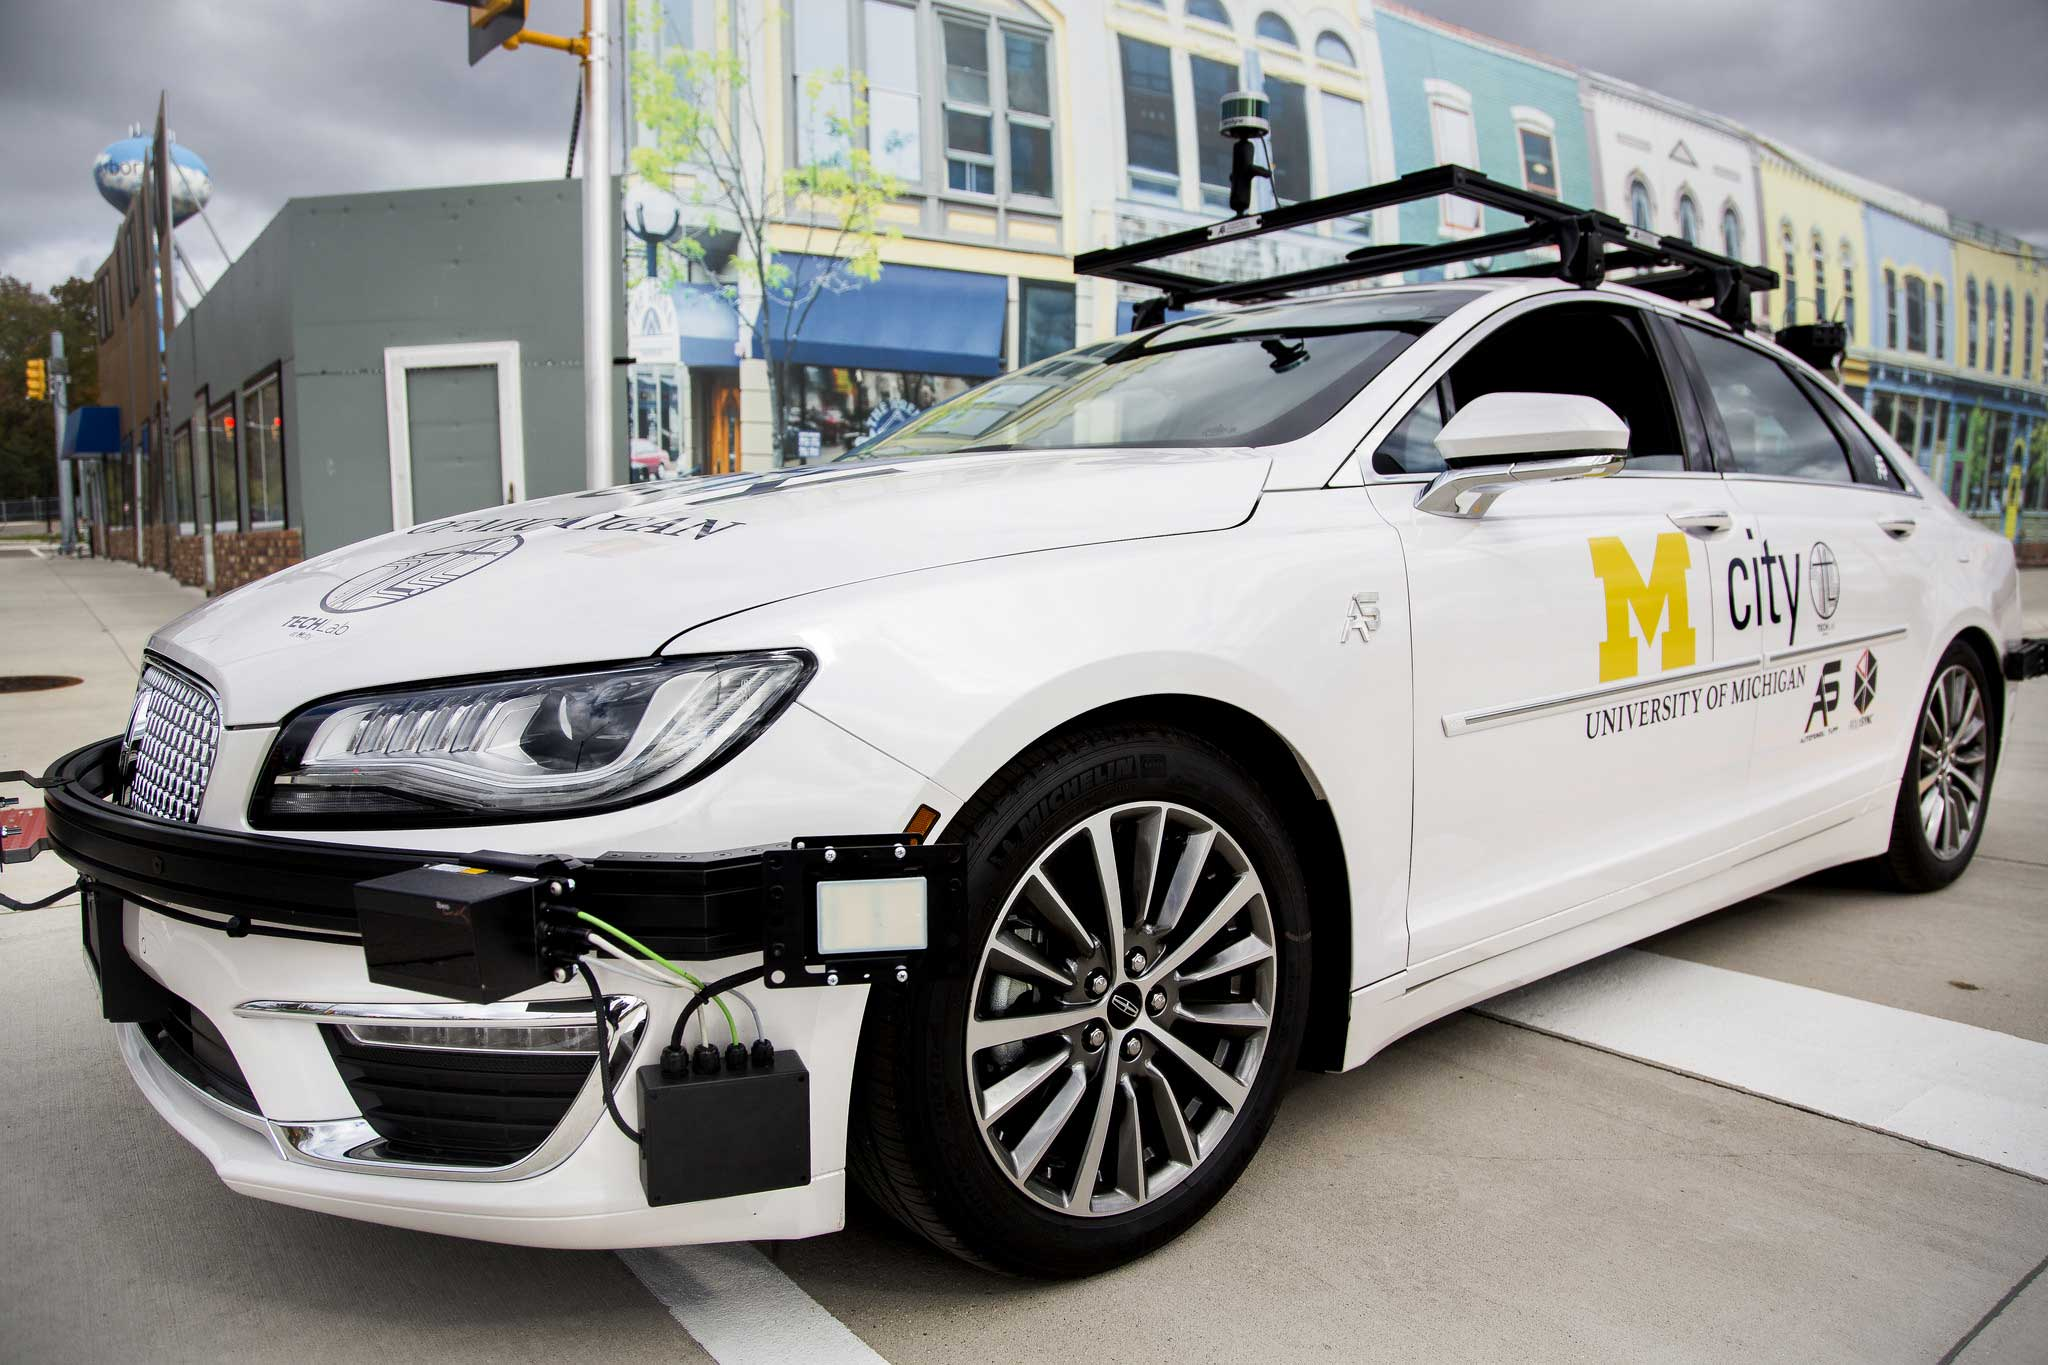 U-M offers open-access automated cars to advance driverless research ...